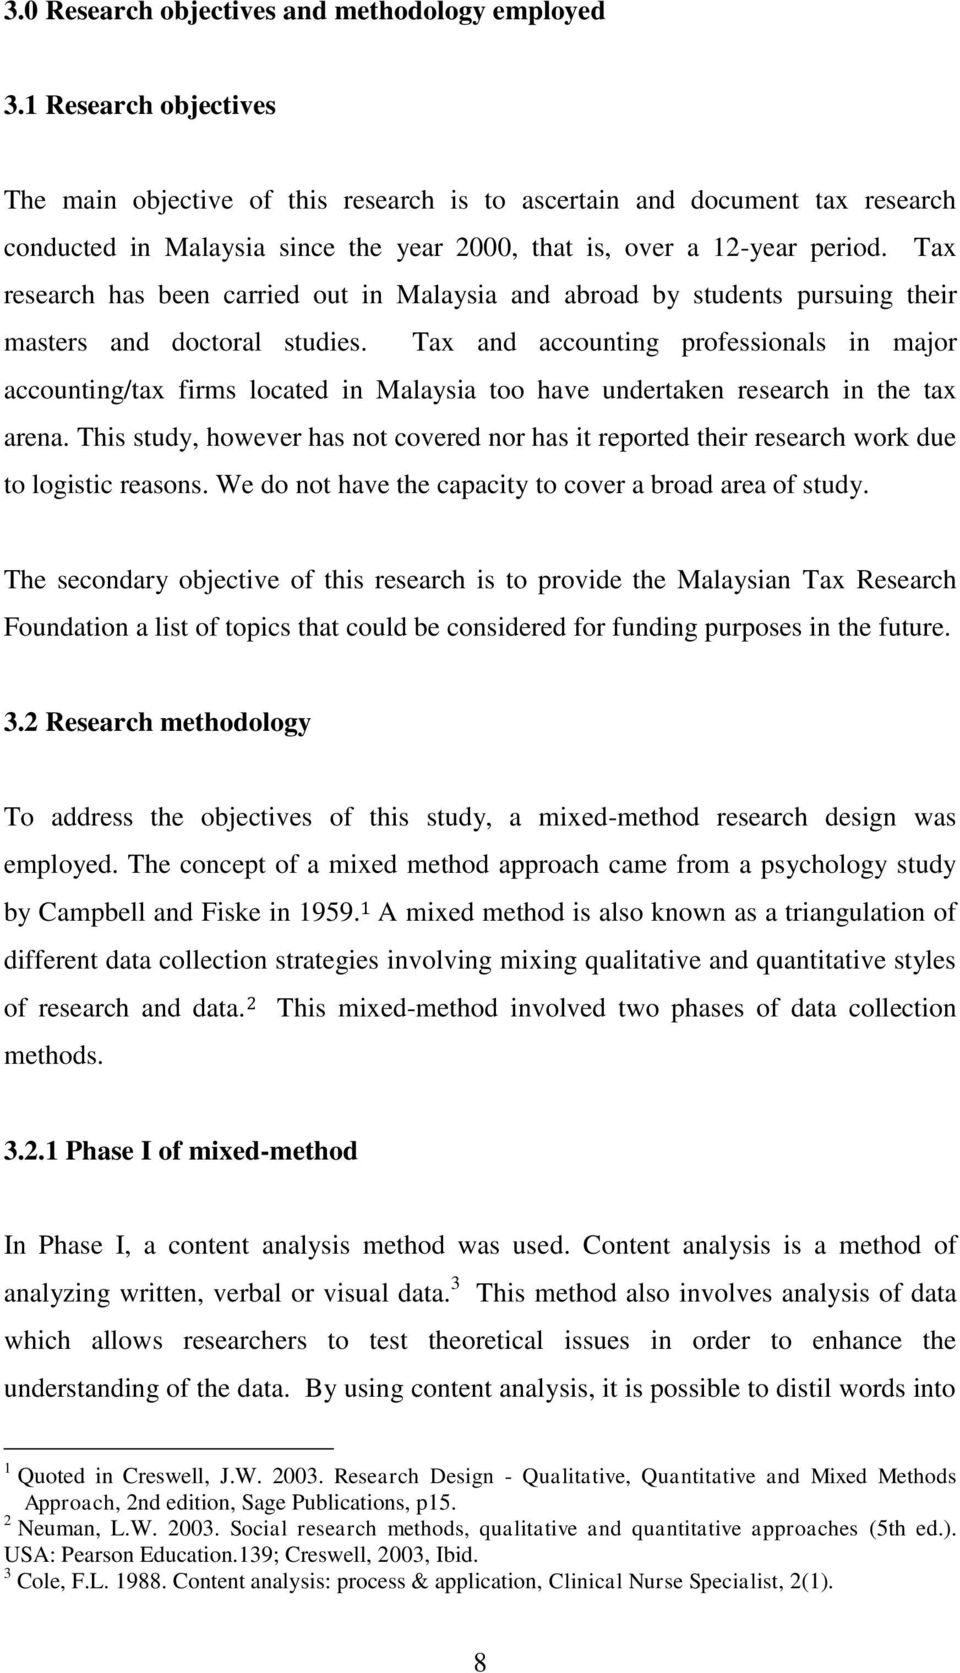 Tax research has bee carried out i Malaysia ad abroad by studets pursuig their masters ad doctoral studies.